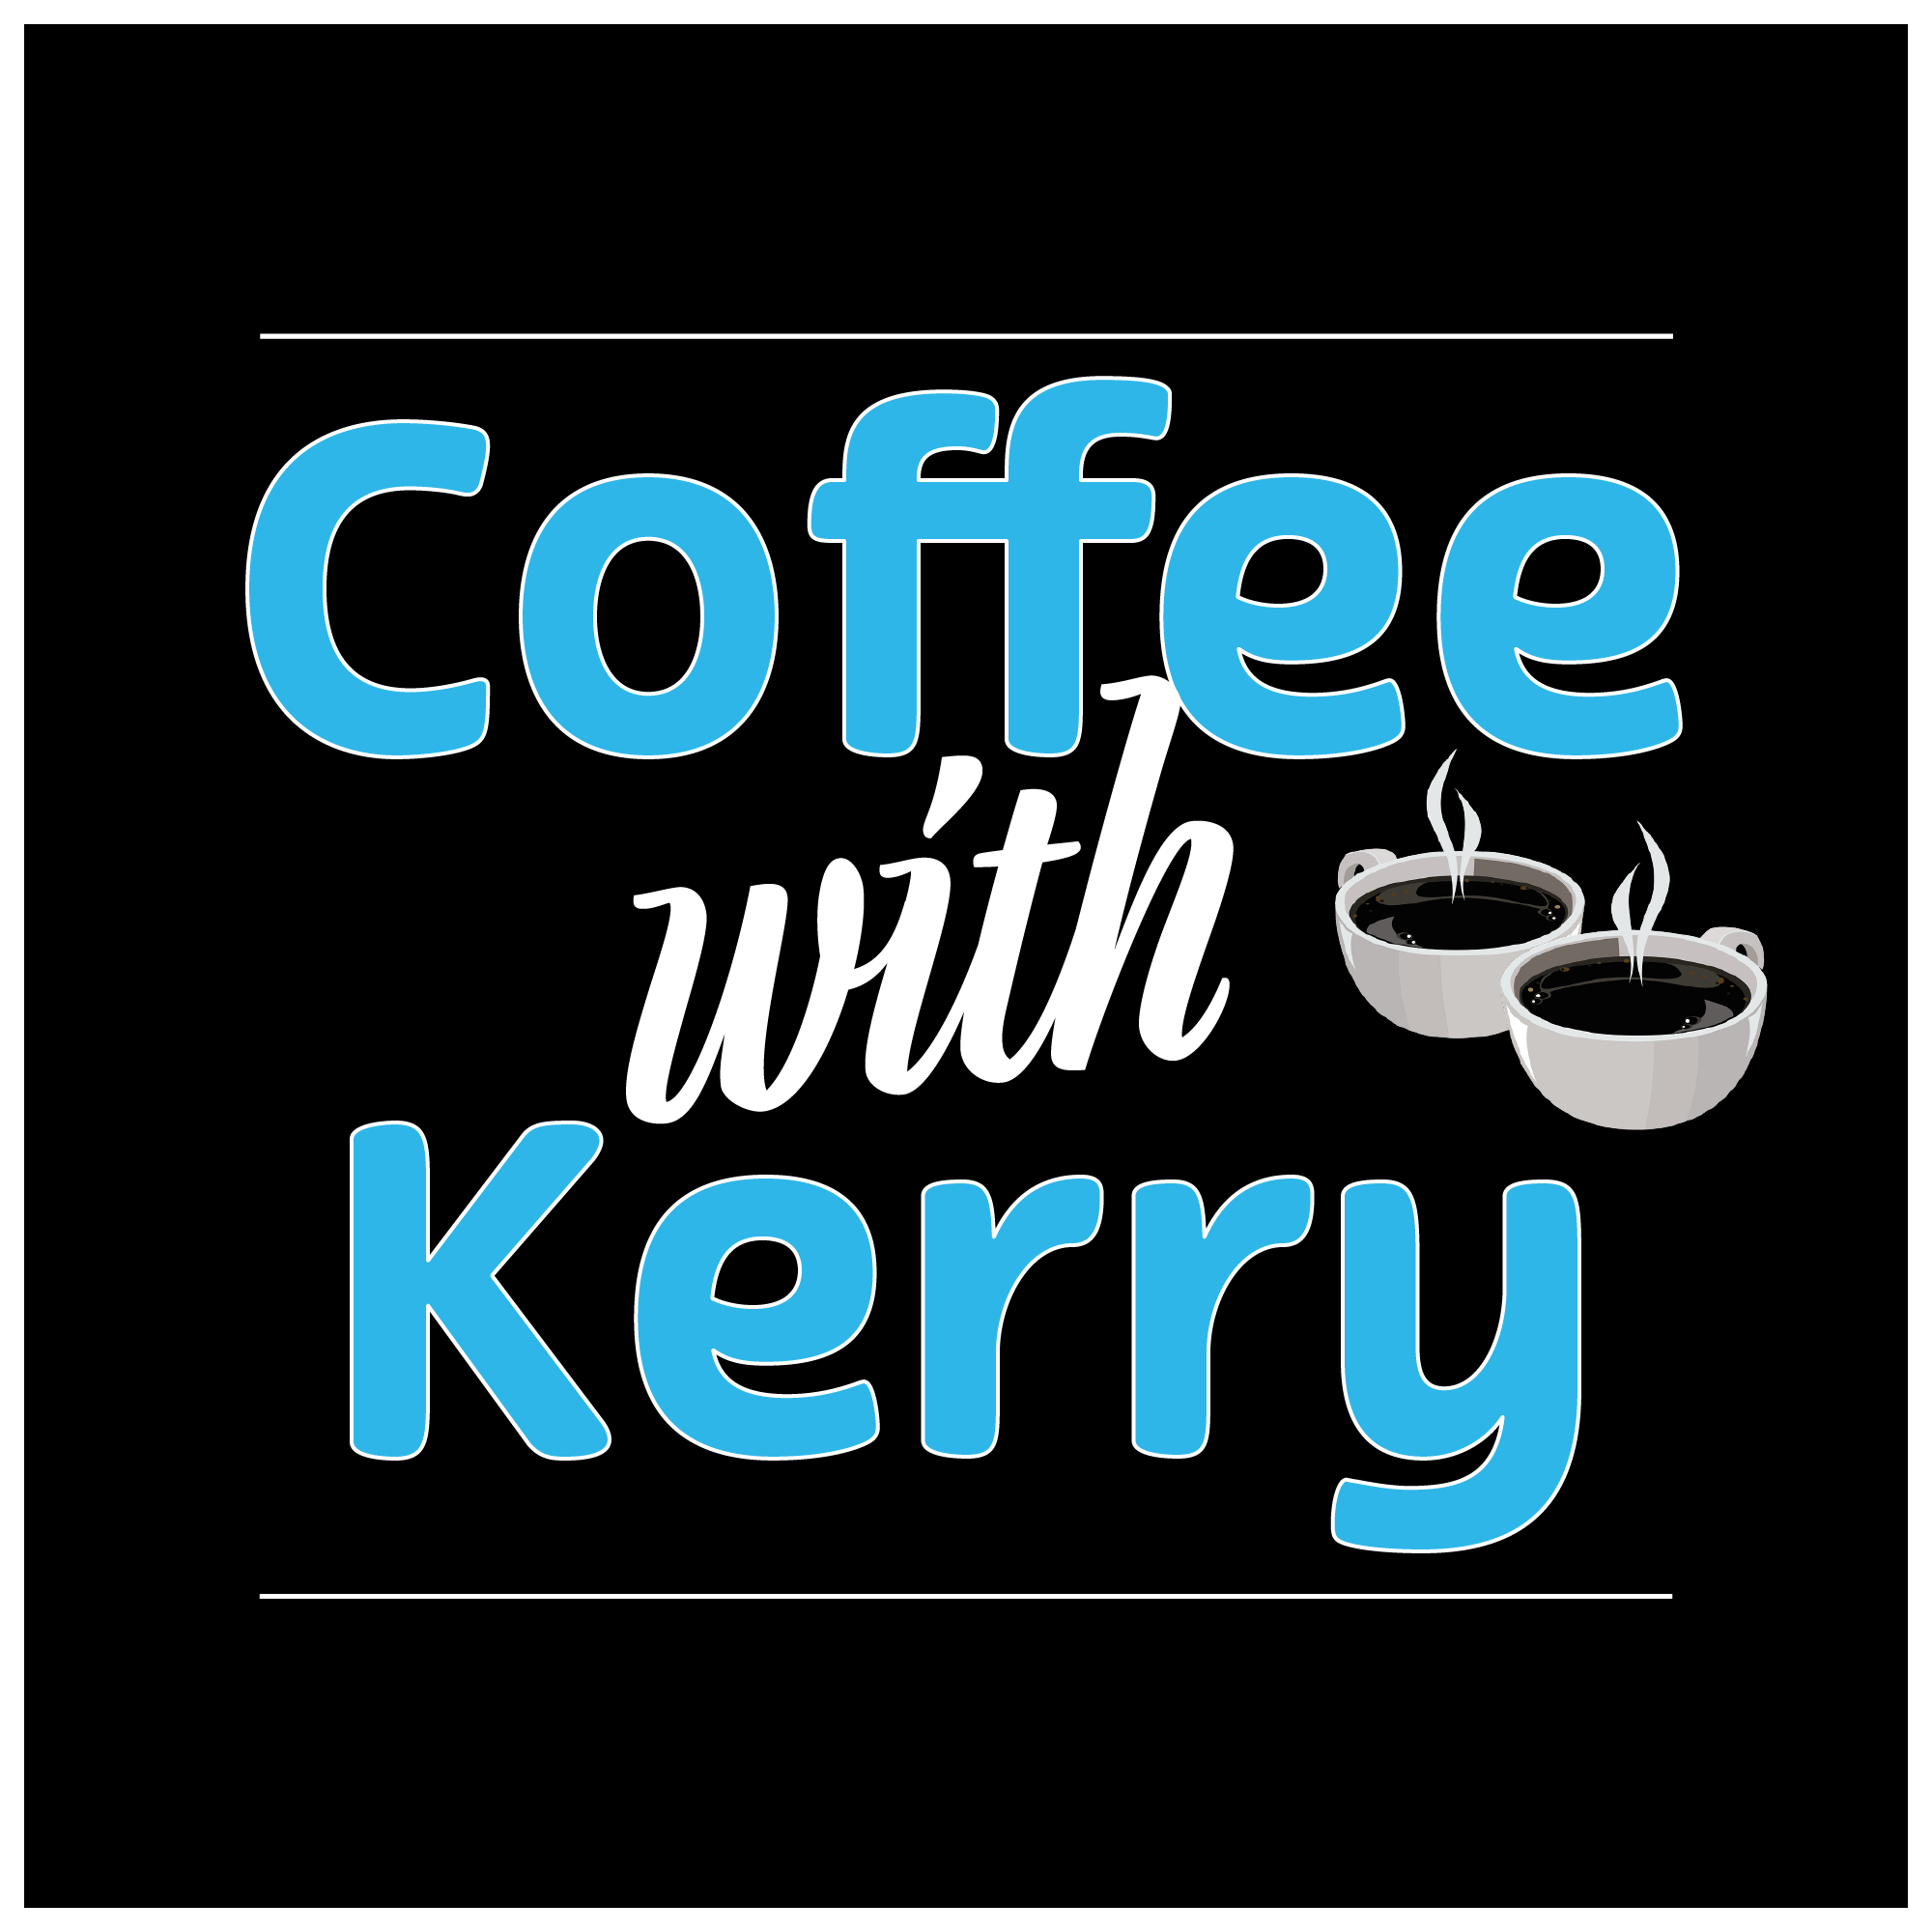 Artwork for podcast Coffee with Kerry